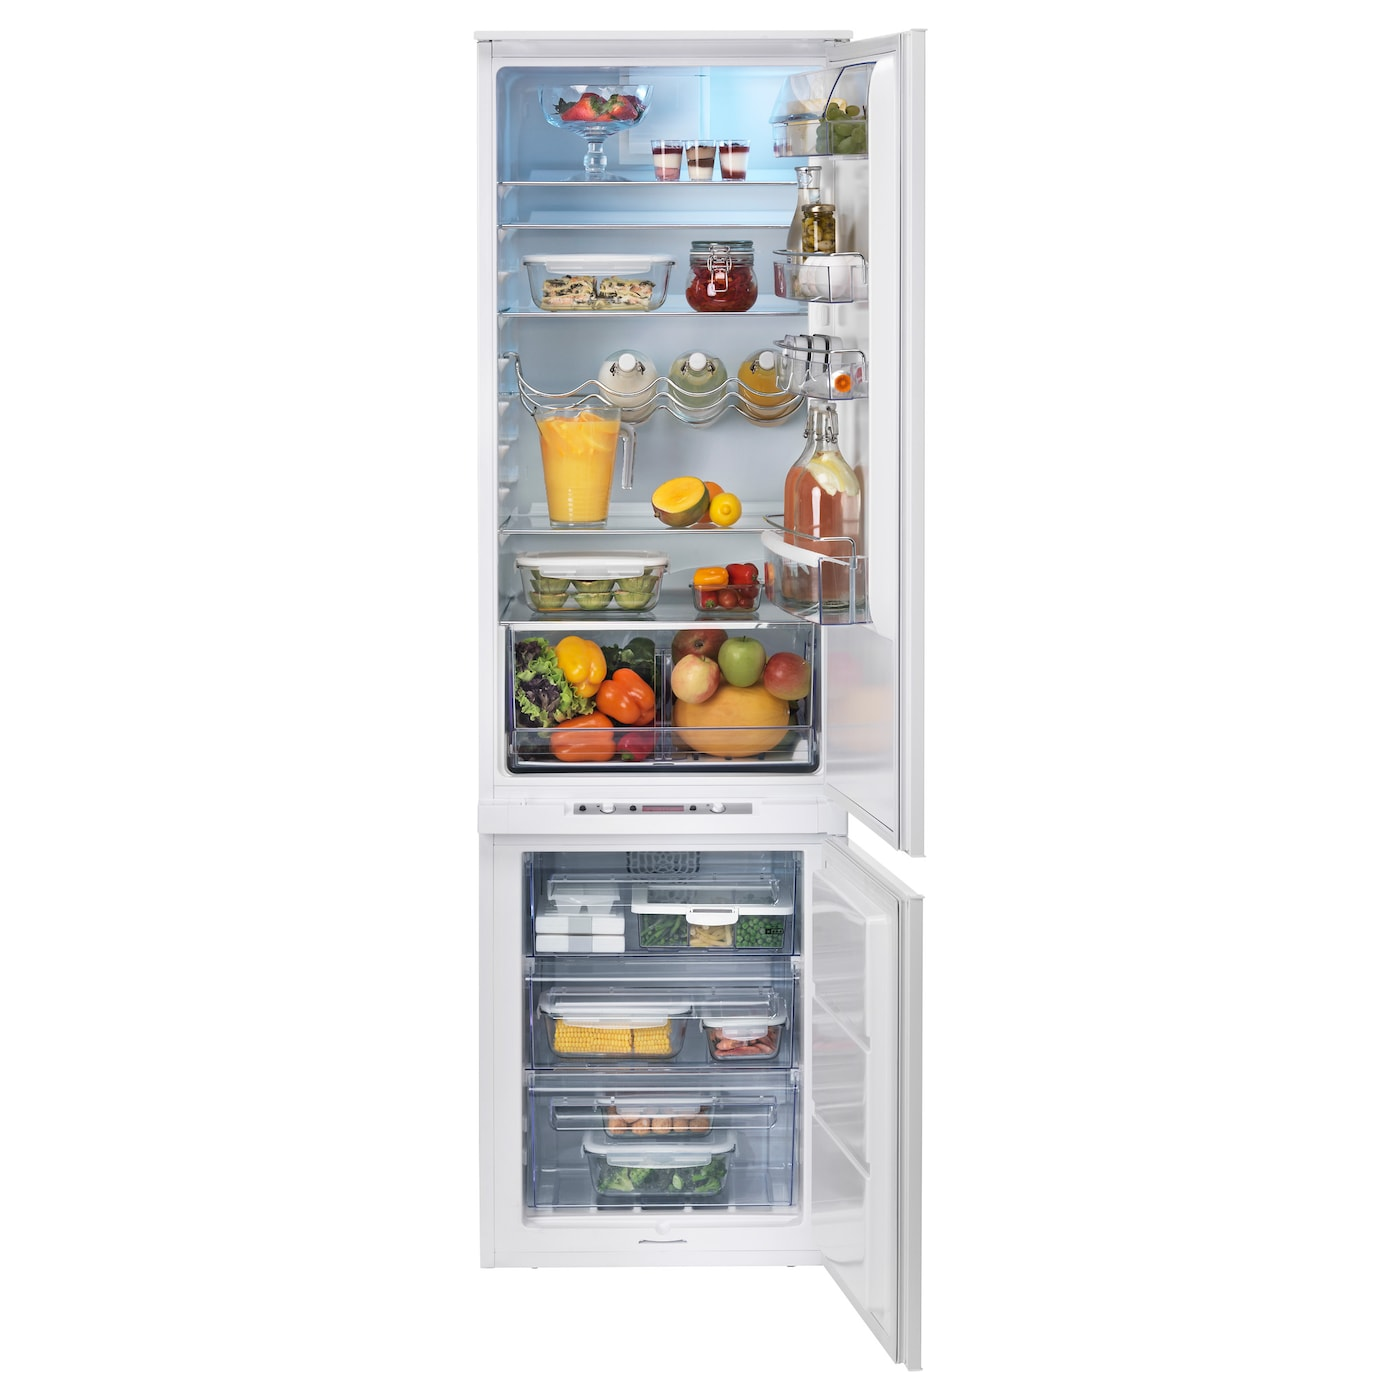 IKEA HÄFTIGT integrated fridge/freezer A+